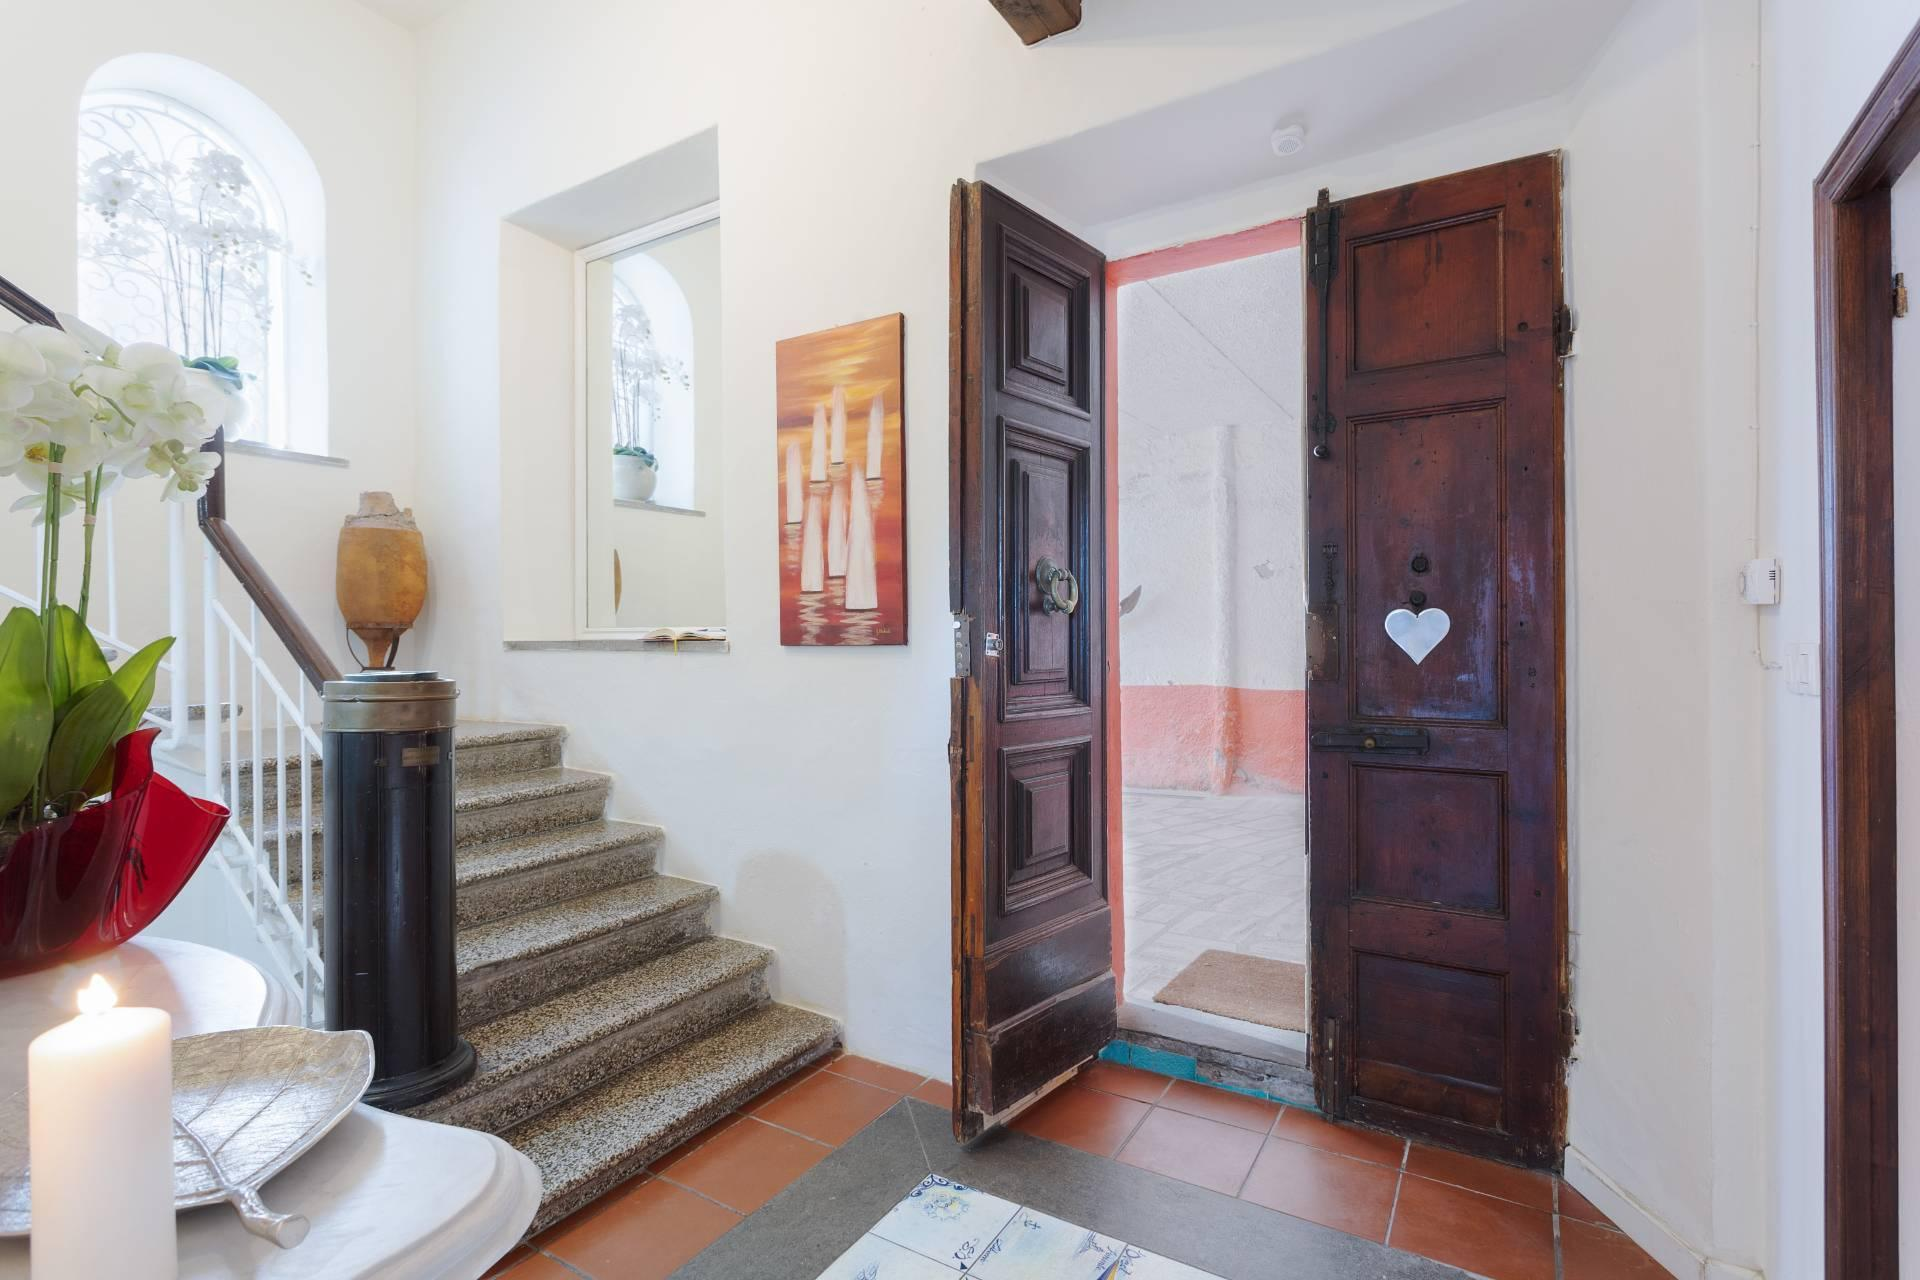 Porto Ercole - Stunning seafront family home with amazing views in historic building - 15